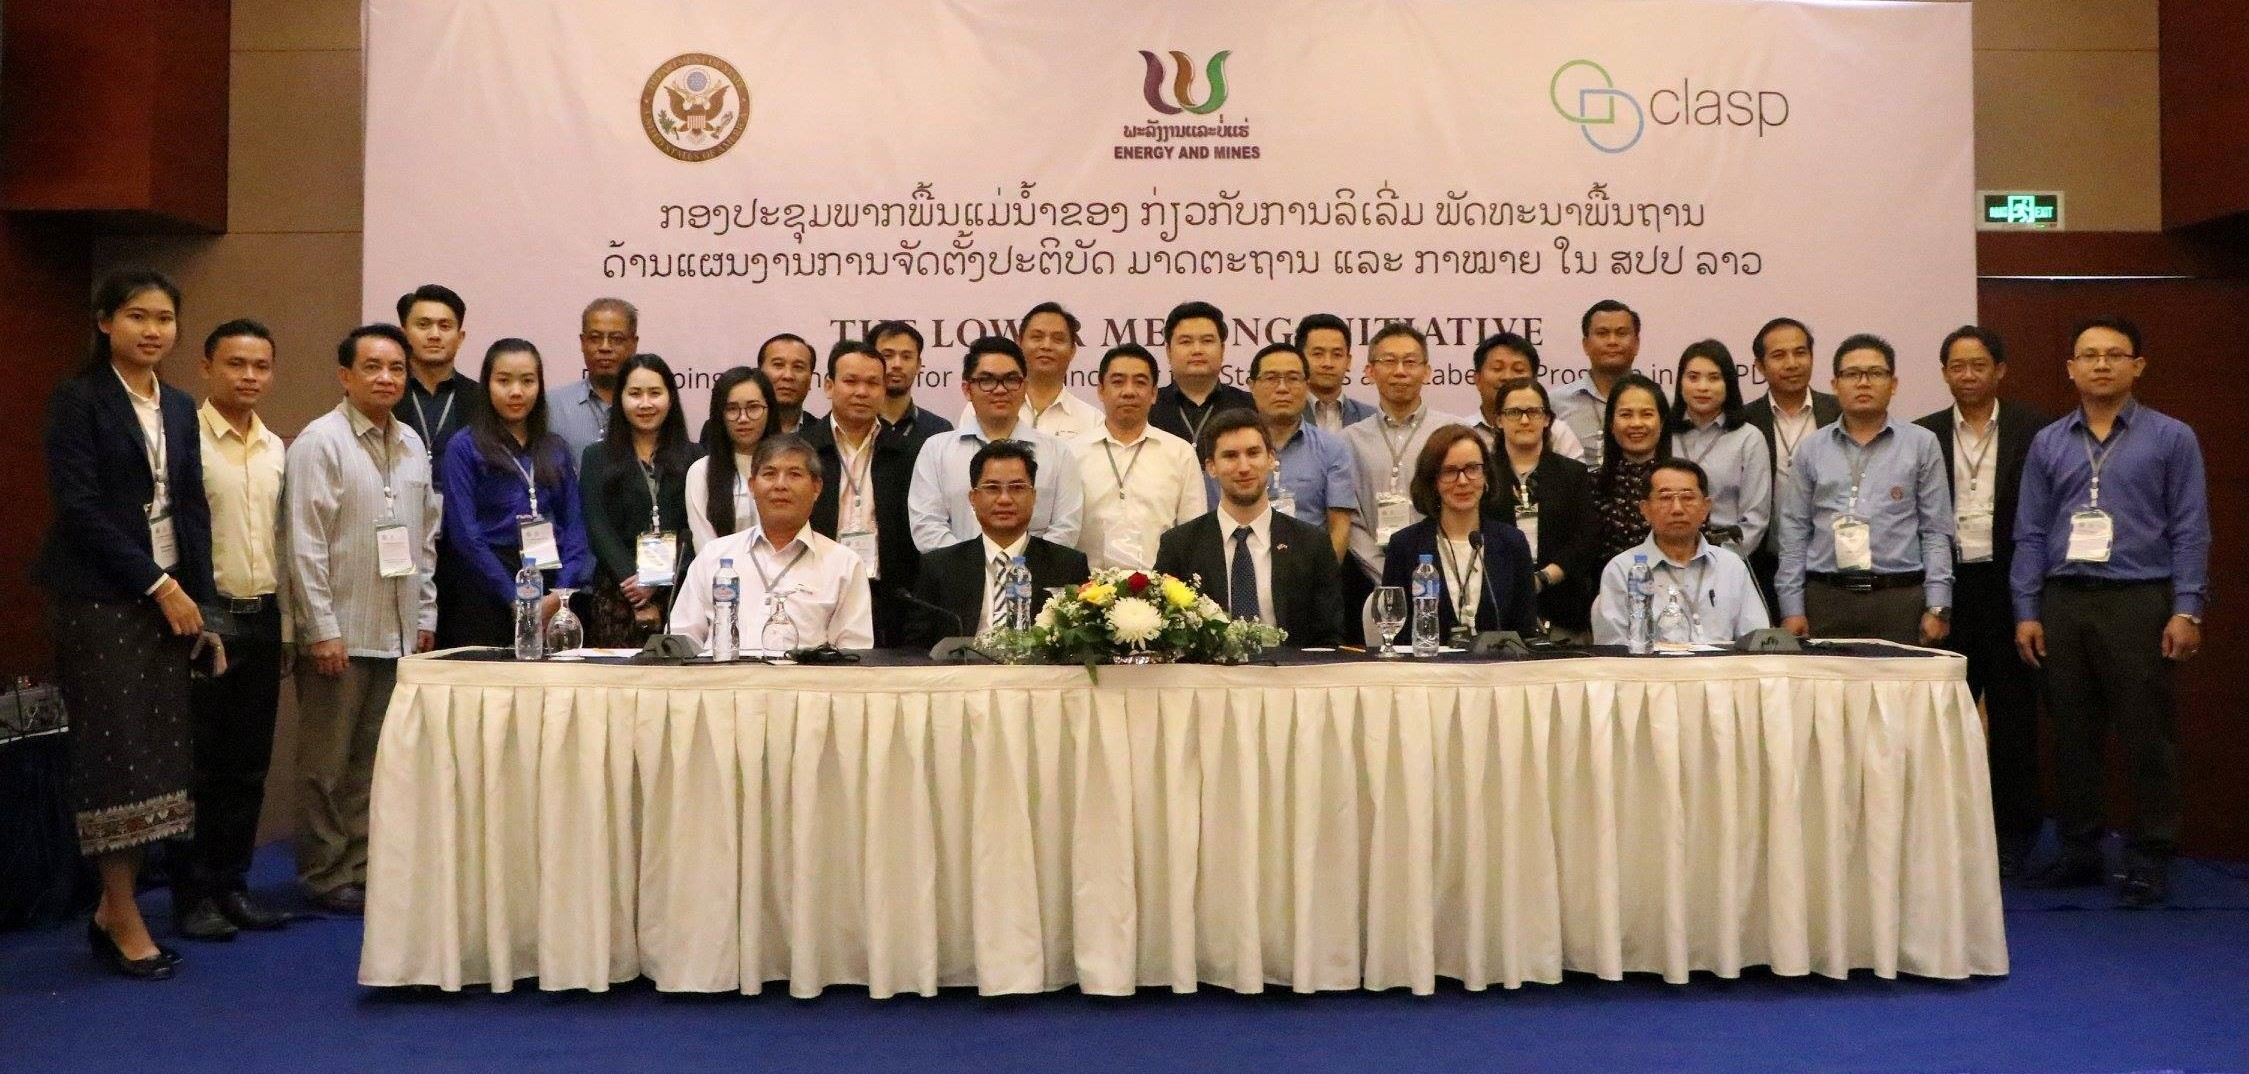 Laos-3.26.19-workshop-group-photo-cropped.jpg#asset:7592